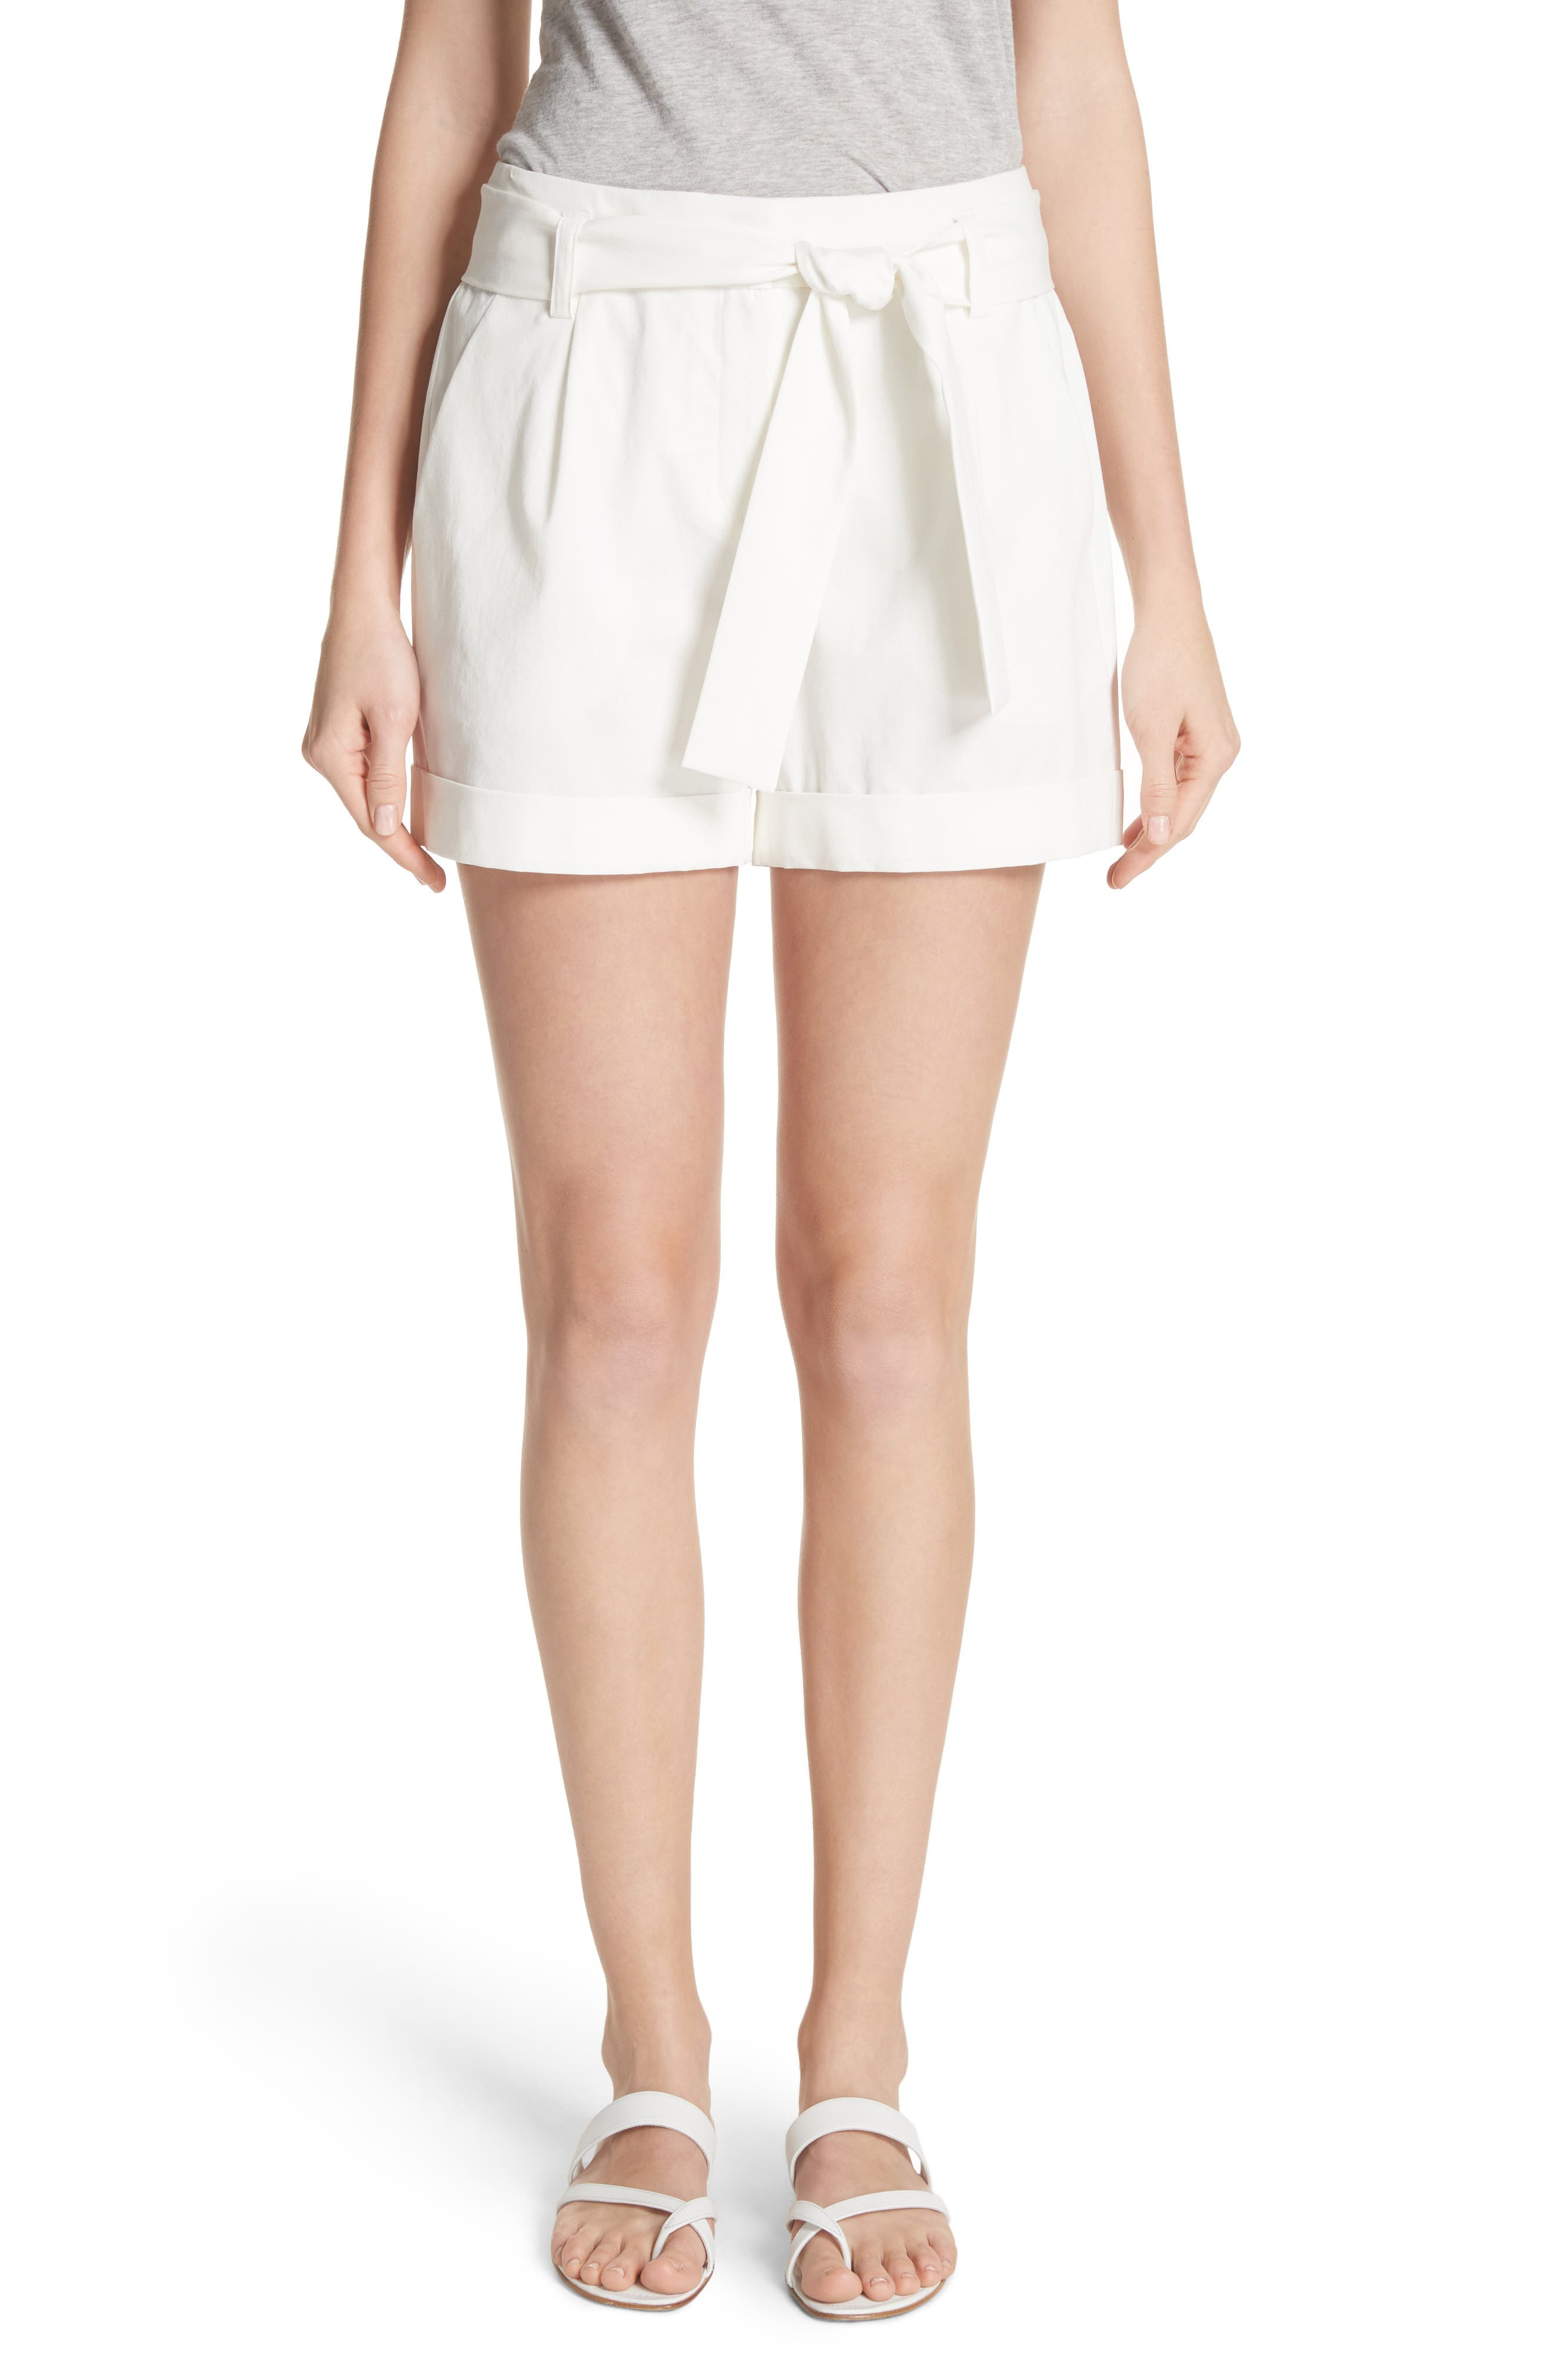 Greenpoint City Shorts,                         Main,                         color, White